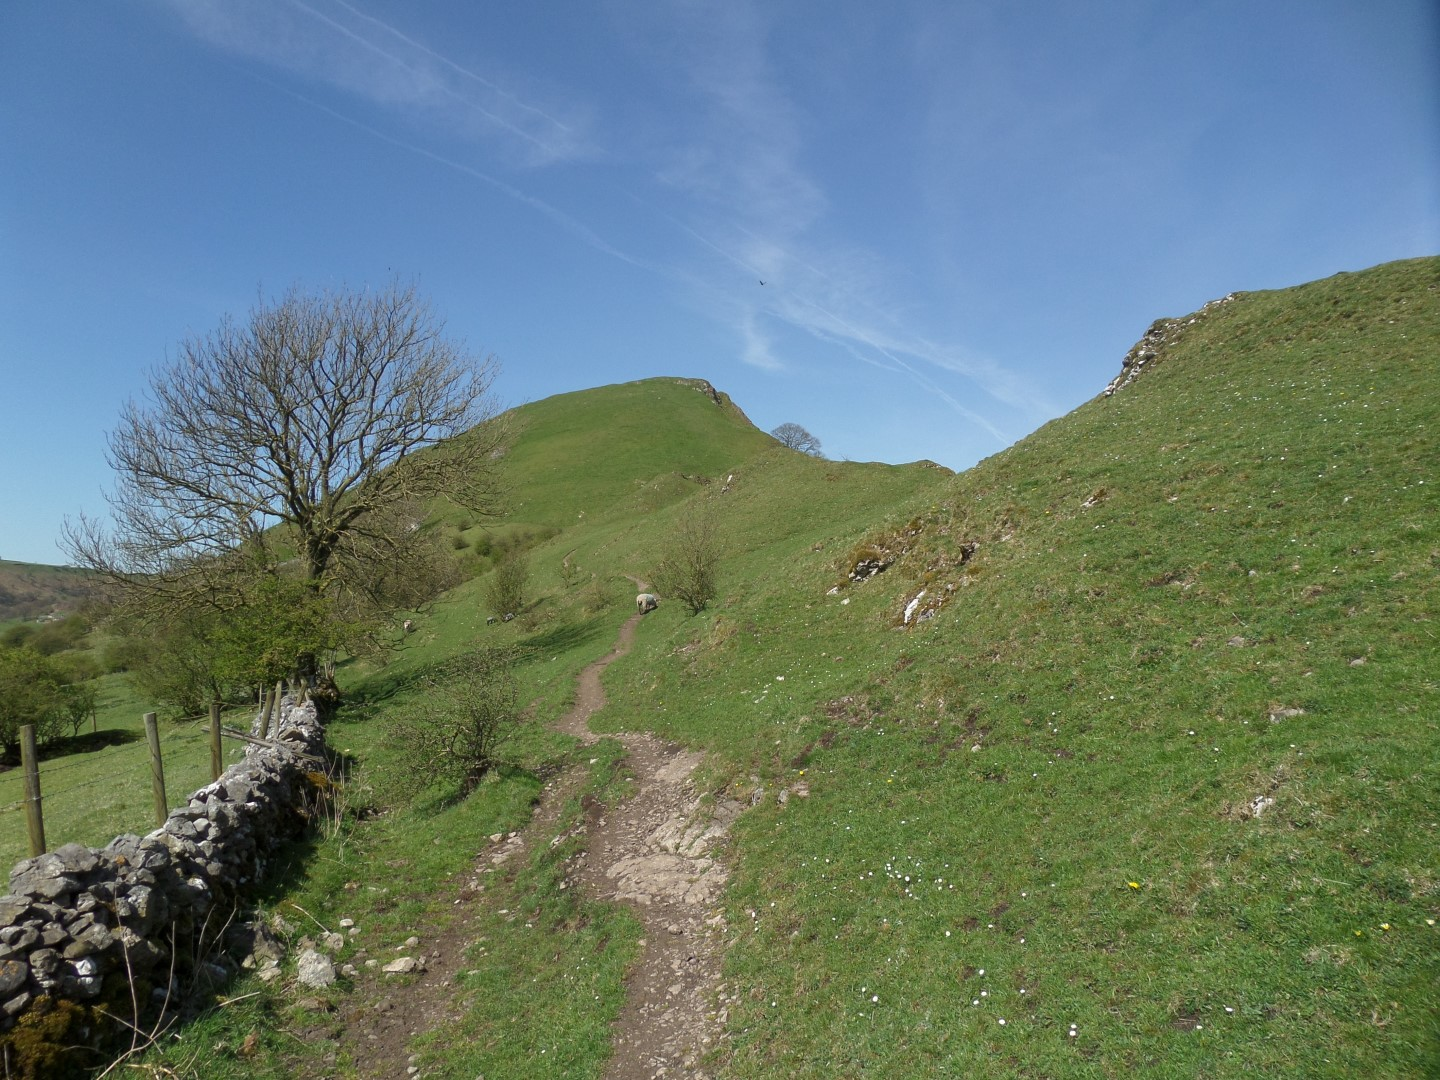 The ascent of Chrome Hill begins